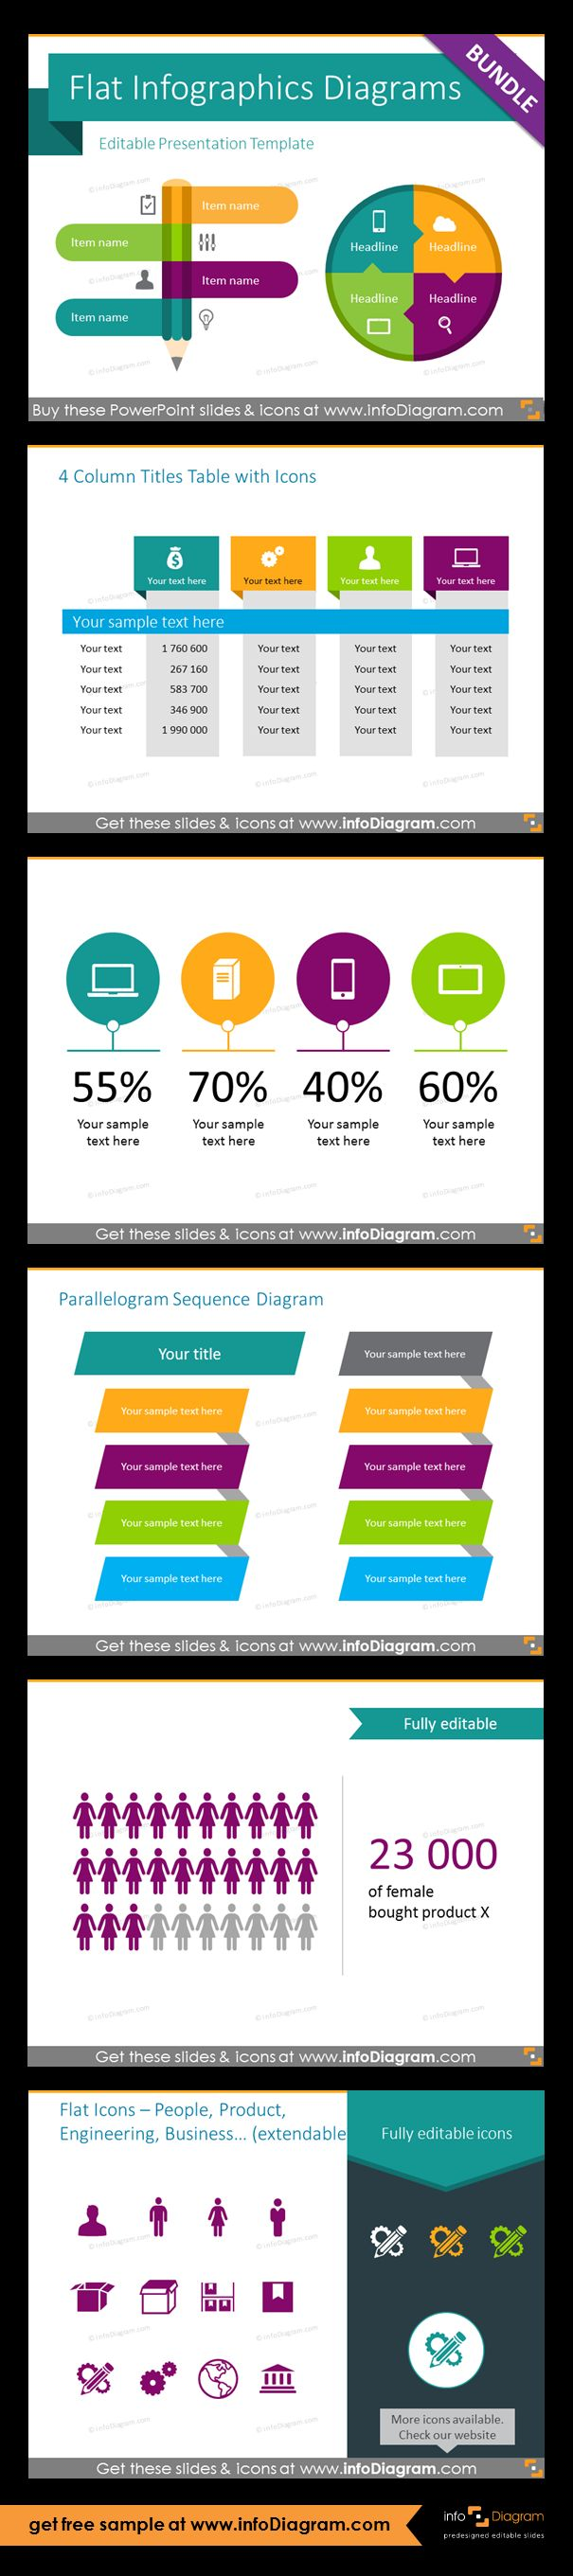 Infographics PowerPoint templates with modern flat design editable diagrams and vector icons. 4-column titles ribbon table with icons, KPIs representing example, parallelogram sequence diagram, example of creative data presentation, index of people, product, business flat icons. Fully editable style, size and colors.